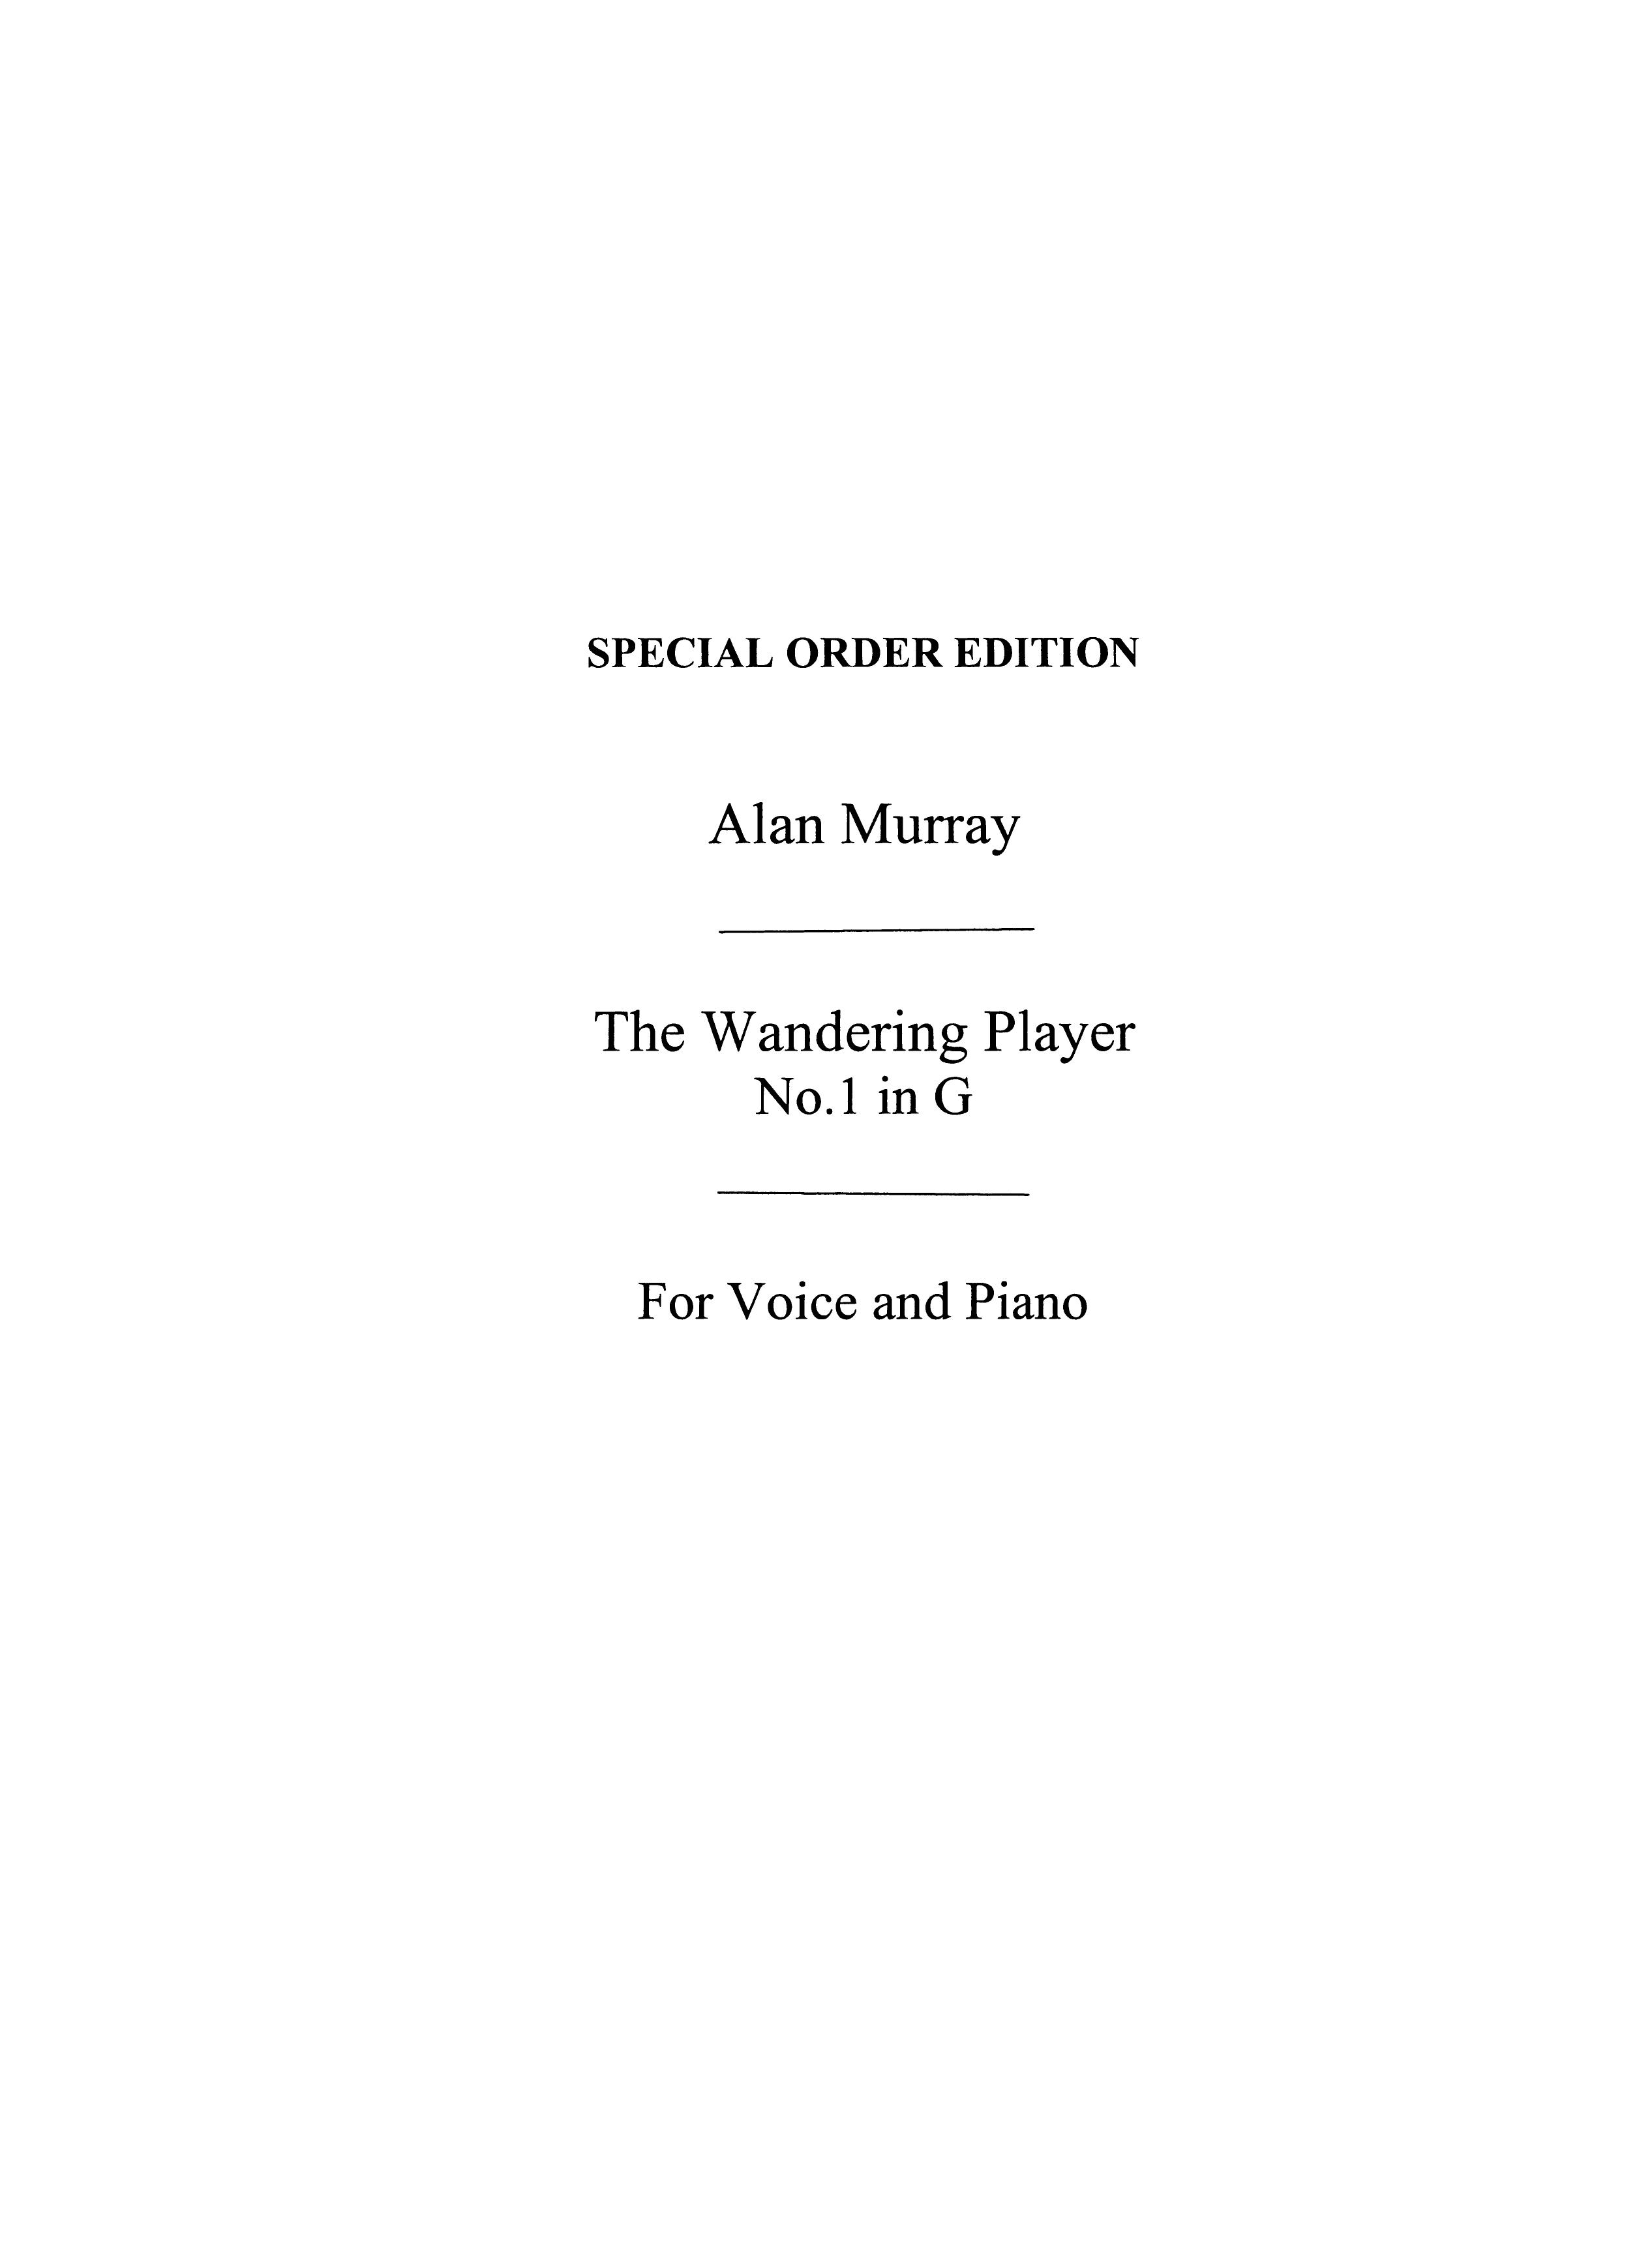 Alan Murray: The Wandering Player: Low Voice: Vocal Score